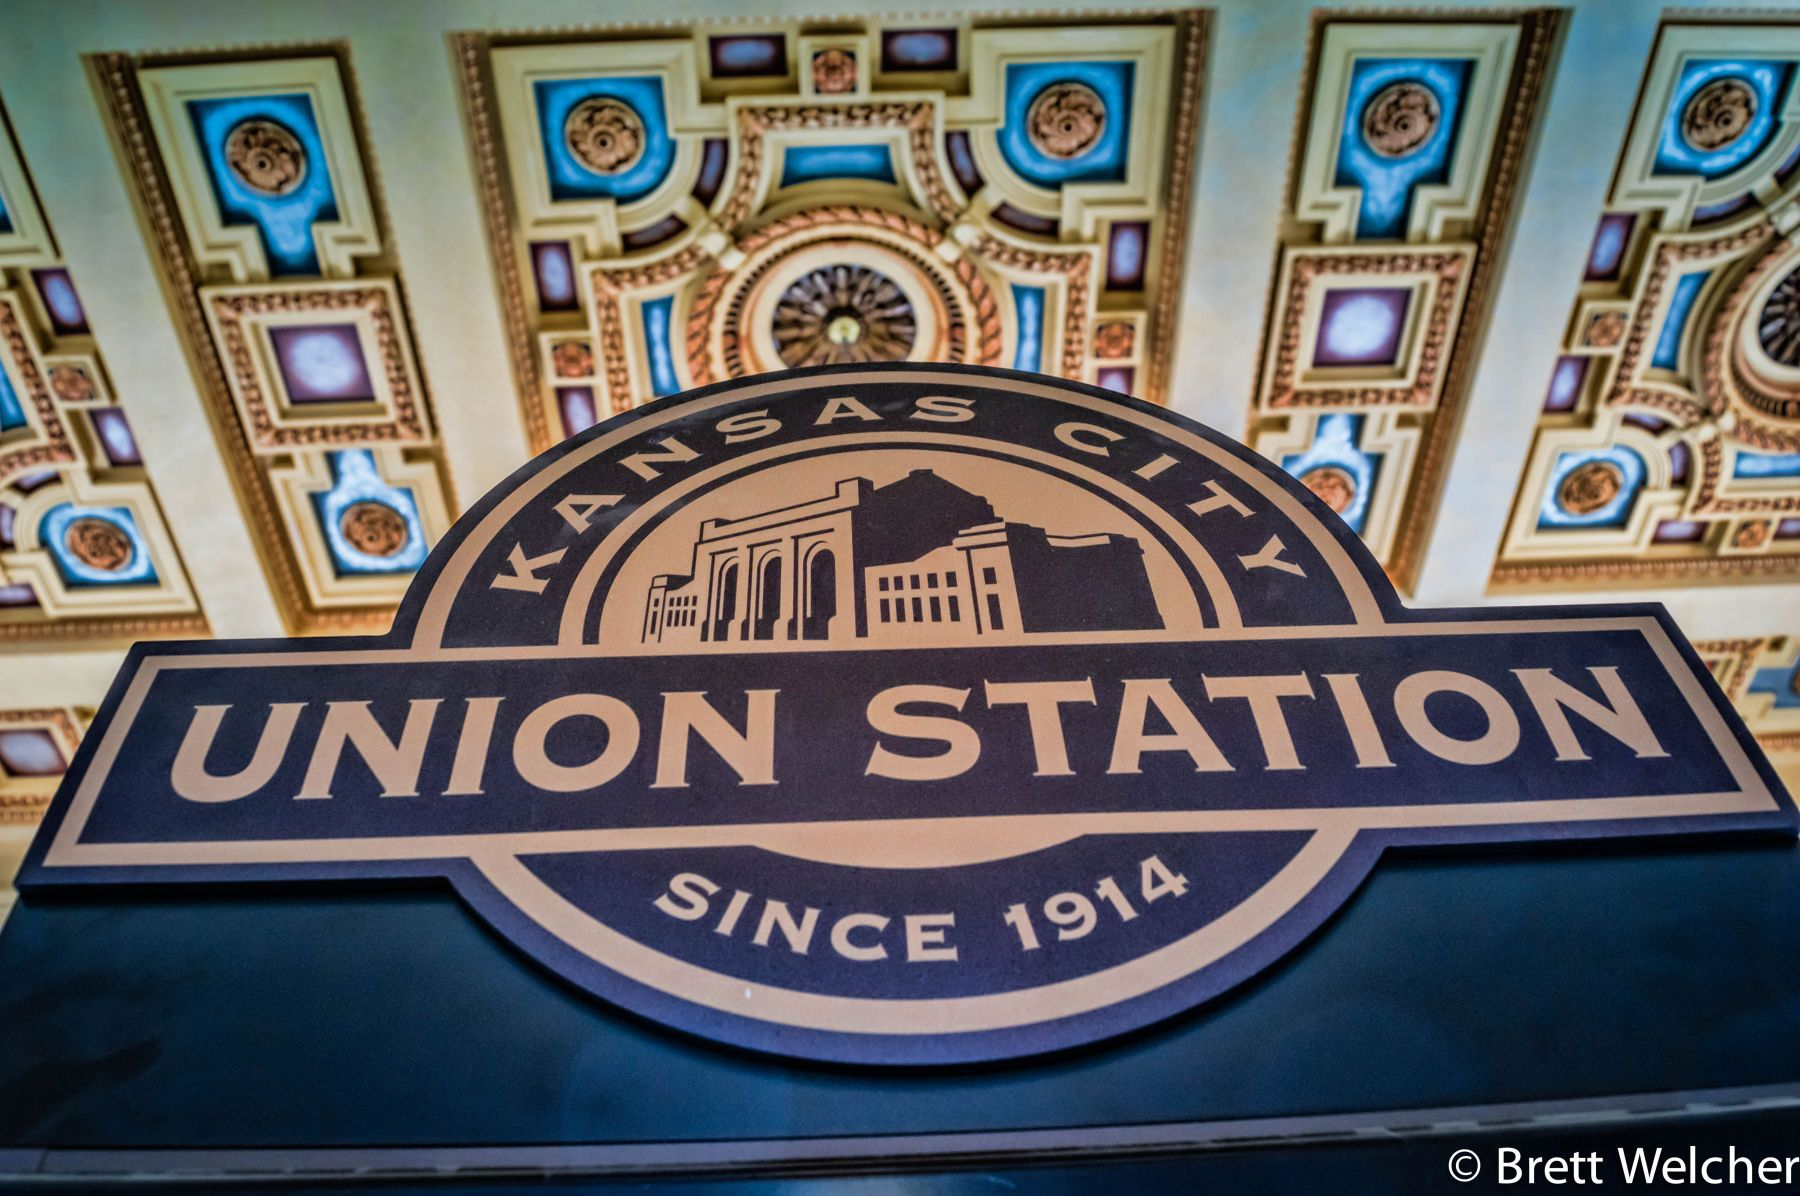 Kansas City Union Station opened in 1914, serving Kansas City, Missouri and the surrounding metropolitan area. It served a peak annual passenger traffic of over 670,000 in 1945 at the end of World War II, quickly declining in the 1950's and was closed in 1